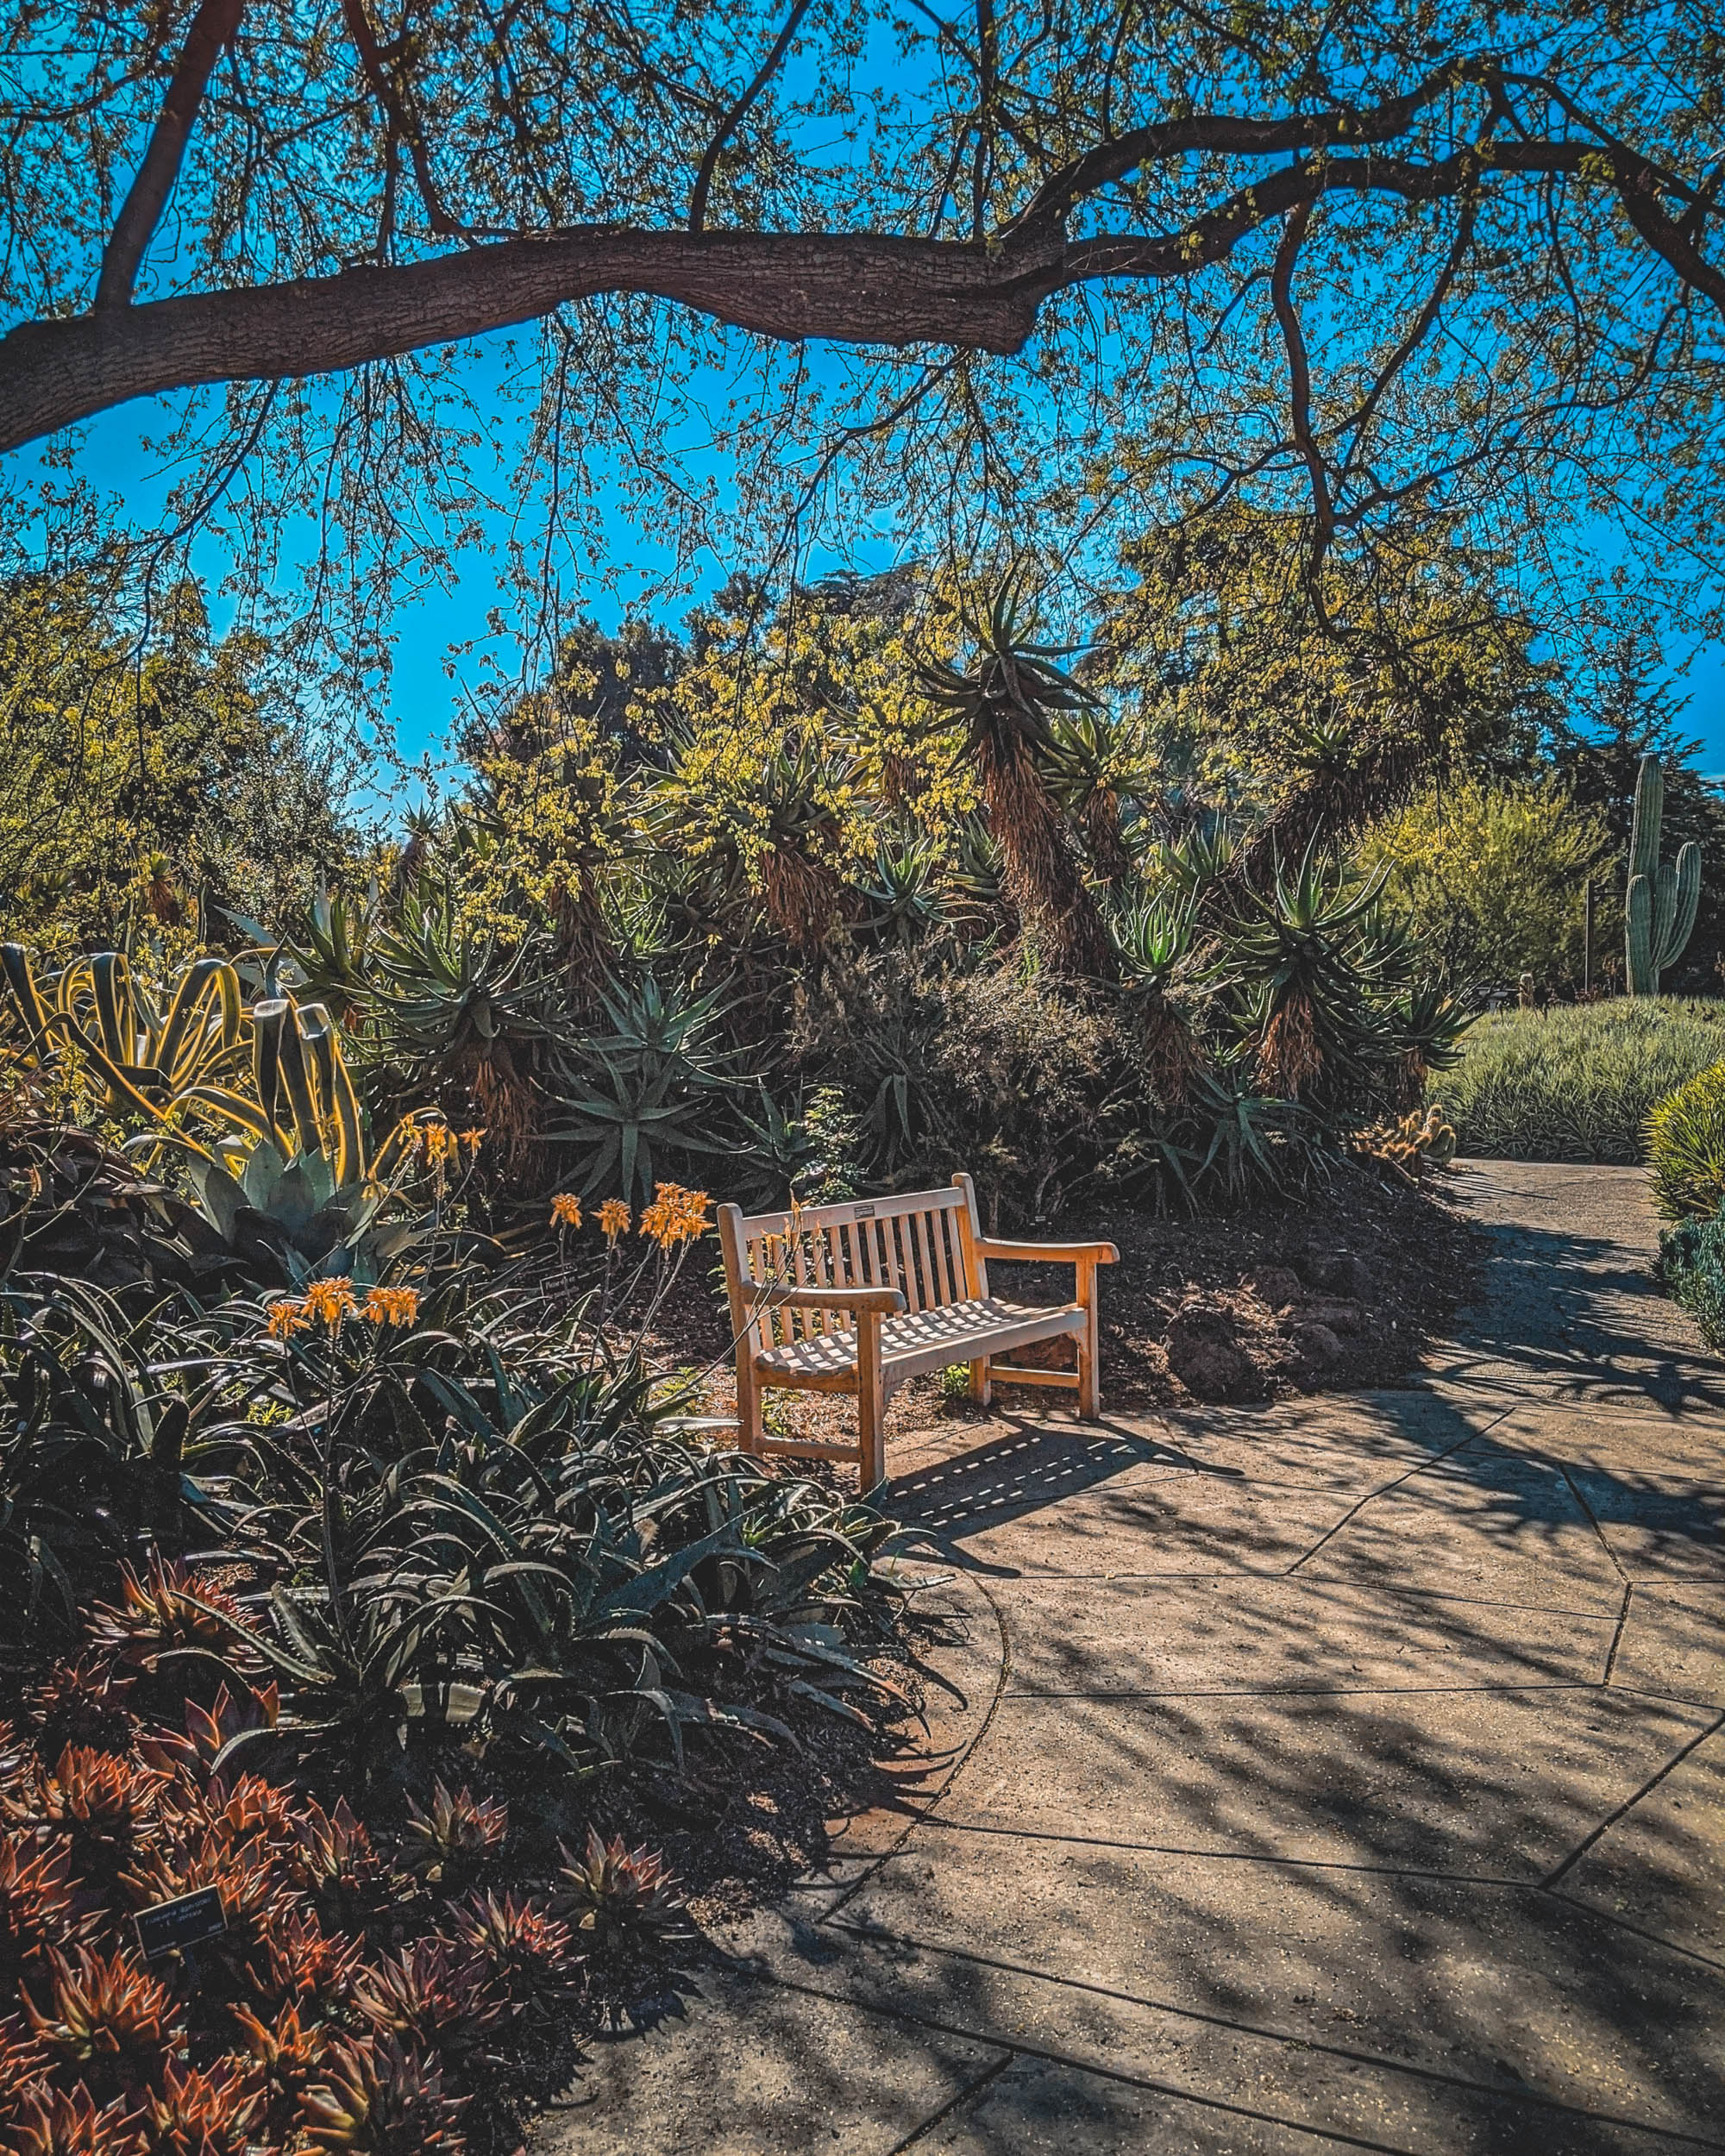 #EyesForLA, America, Los Angeles, naina redhu, naina.co, usa, huntington library and botanical gardens, huntington botanical gardens, huntington botanical gardens los angeles, succulents, cactus, cacti, garden benches, sunset, desert garden, haworthia, haworthiopsis, gasteria, prickly pear, plants, trees, conservation, ecology, orchids, chrysanthemums, flower show, flowers, cactus flowers, stinky flowers, california, california plants, agave, aloe vera, succulent garden, finger lime, eyesfordestinations, eyes for destinations, koi pond, fish, flower photography, plant photography, flower close-ups, plant close-ups, succulent close ups, succulent photography, lifestyle photographer, travel photographer,